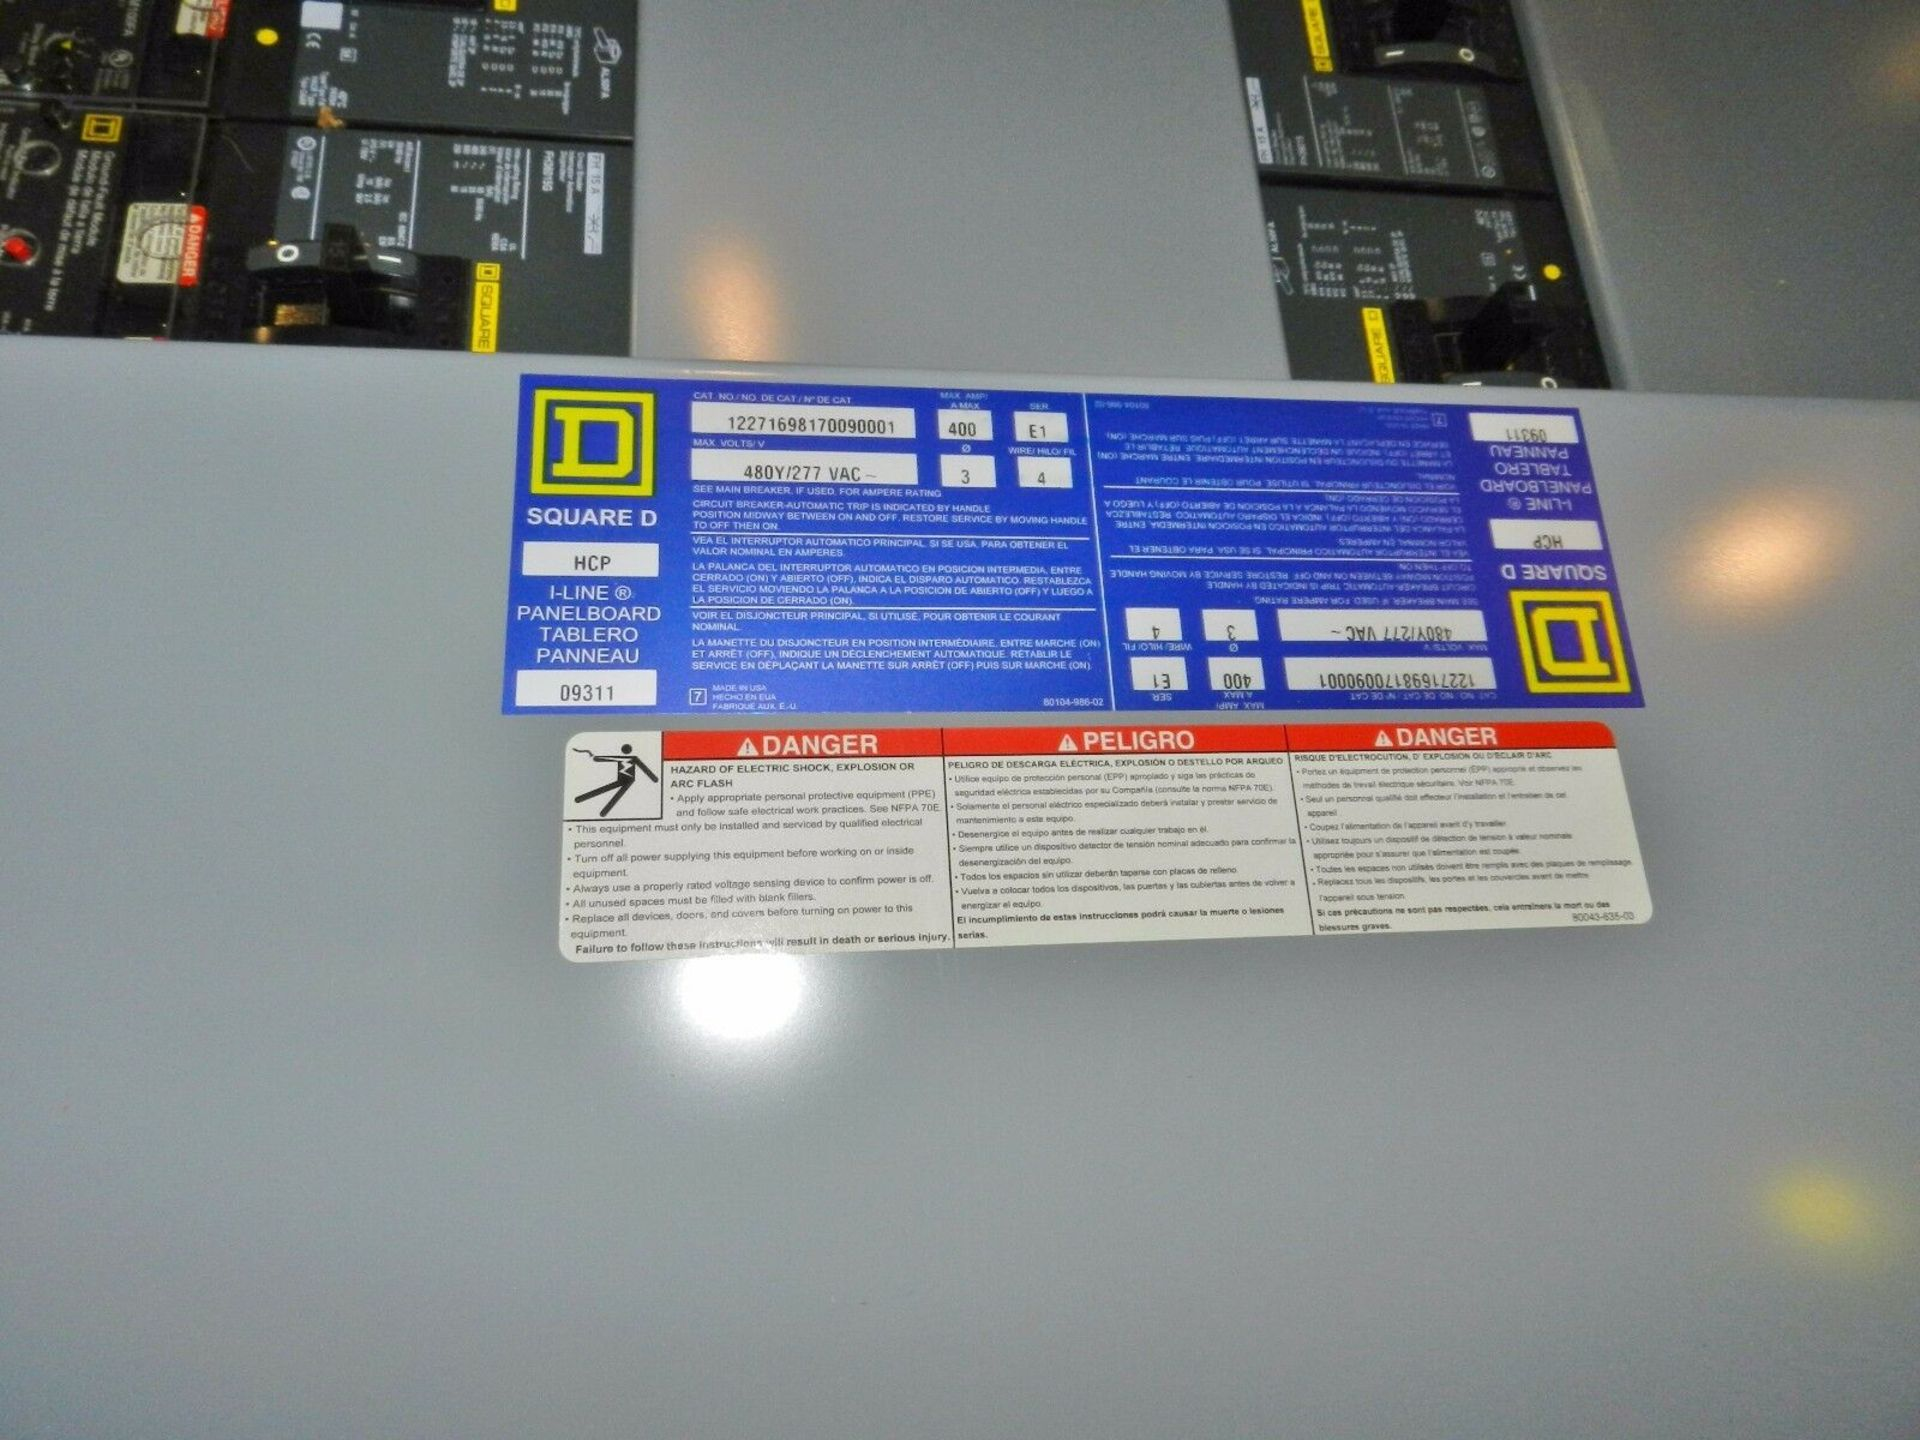 Lot 13 - Square D HCP I-Line Panelboard w/ 400 Amp Breakers